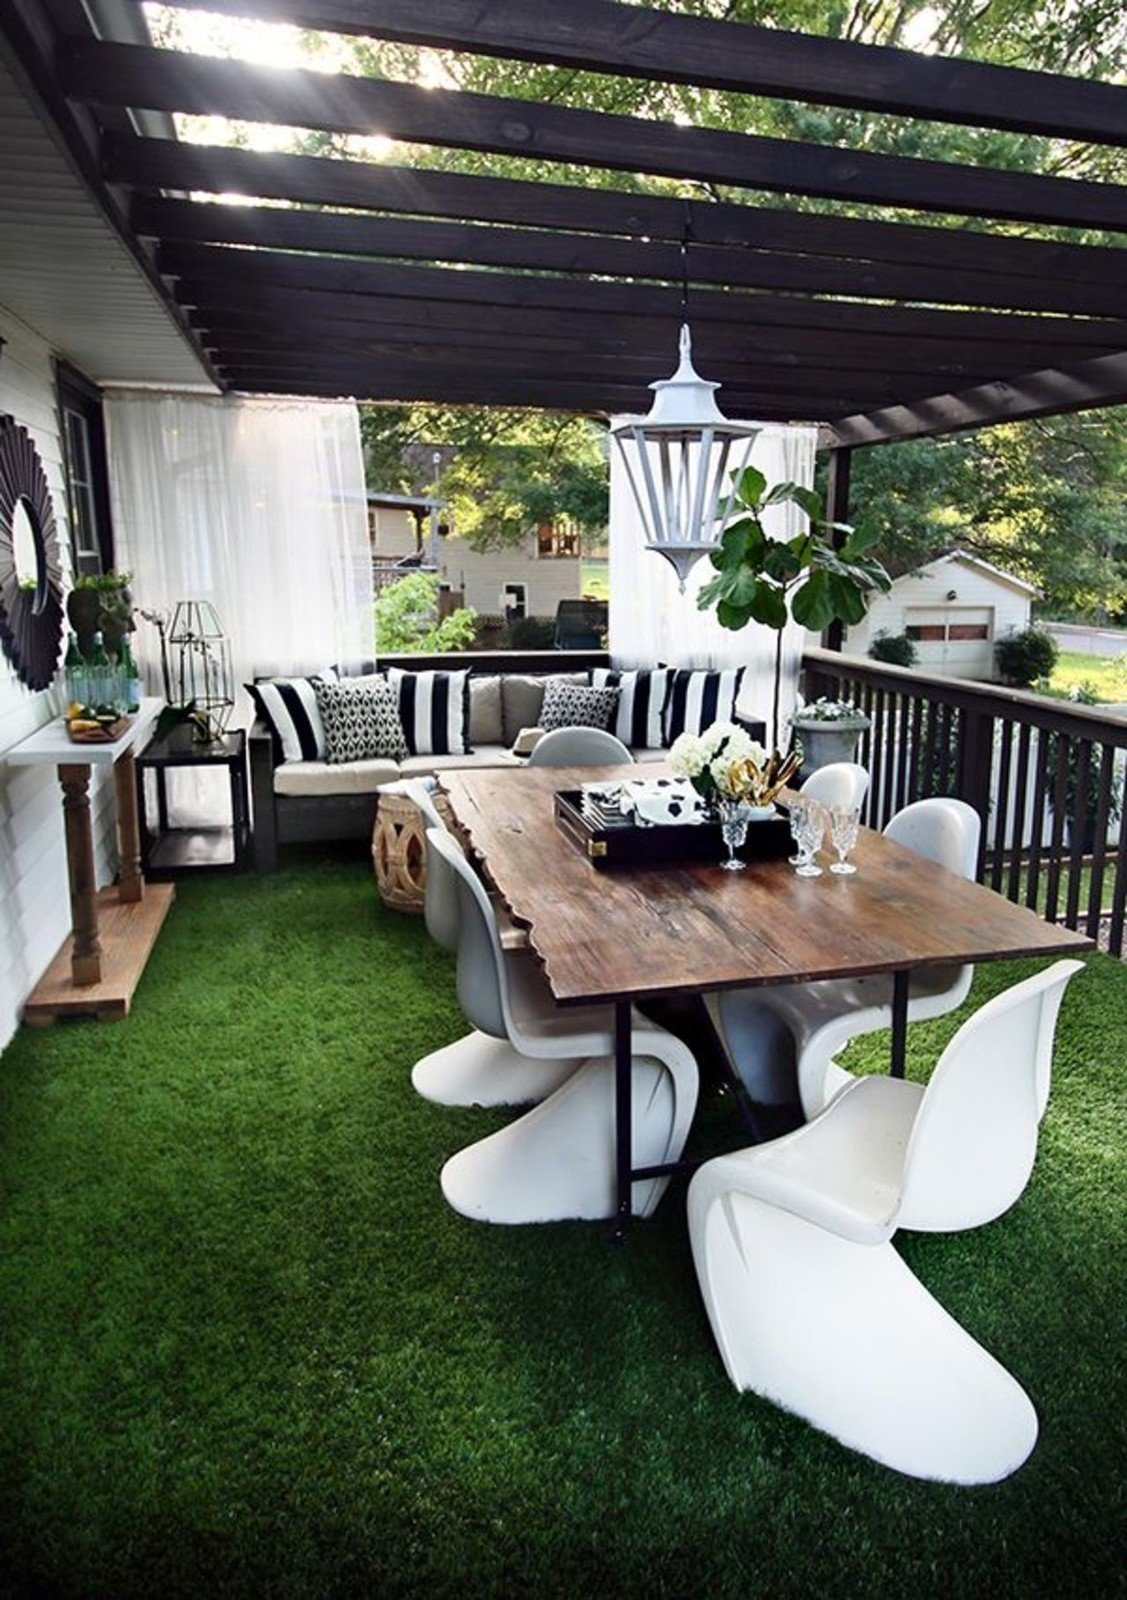 Drought or desertscaping doesn't have to feature succulents only. For rooftop spaces, high-quality astroturf is low maintenance and a great grass replacement.  Photo 4 of 10 in 10 Ways to Use Rugs in Your Outdoor Space This Spring